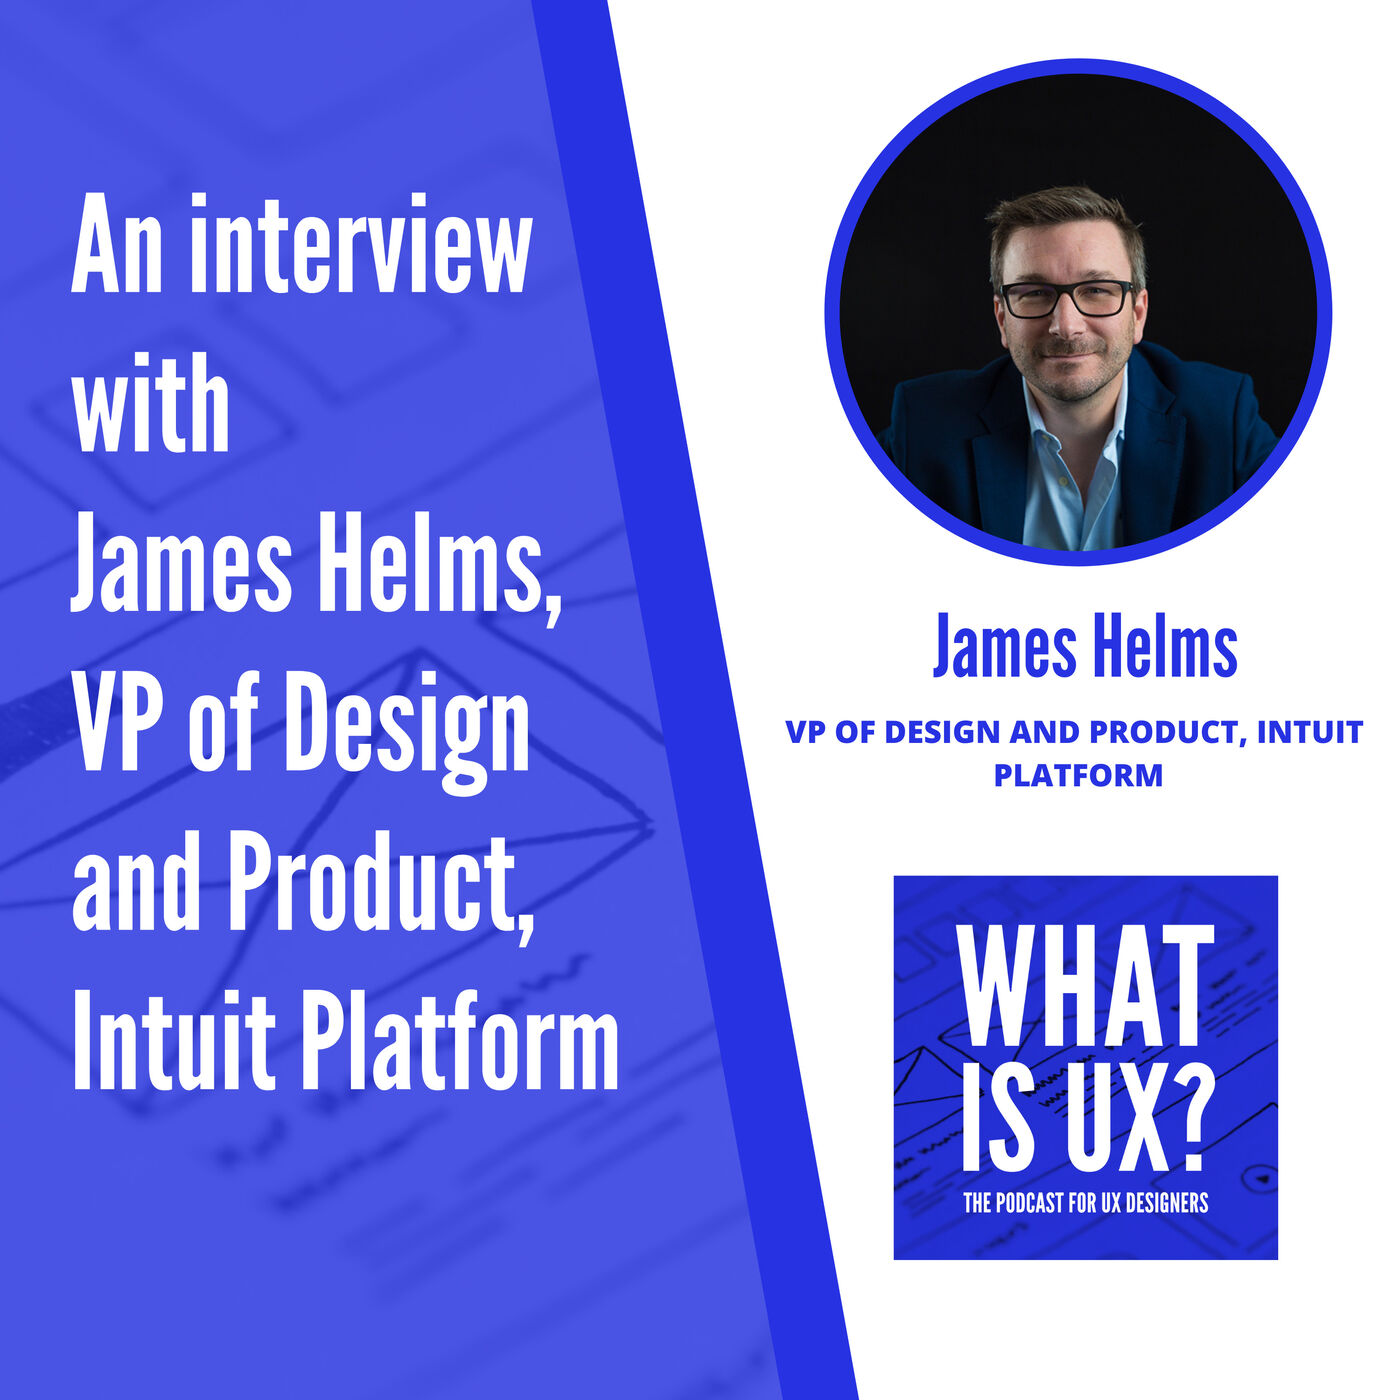 S2E3 An interview with James Helms, VP of Design and Product, Intuit Platform